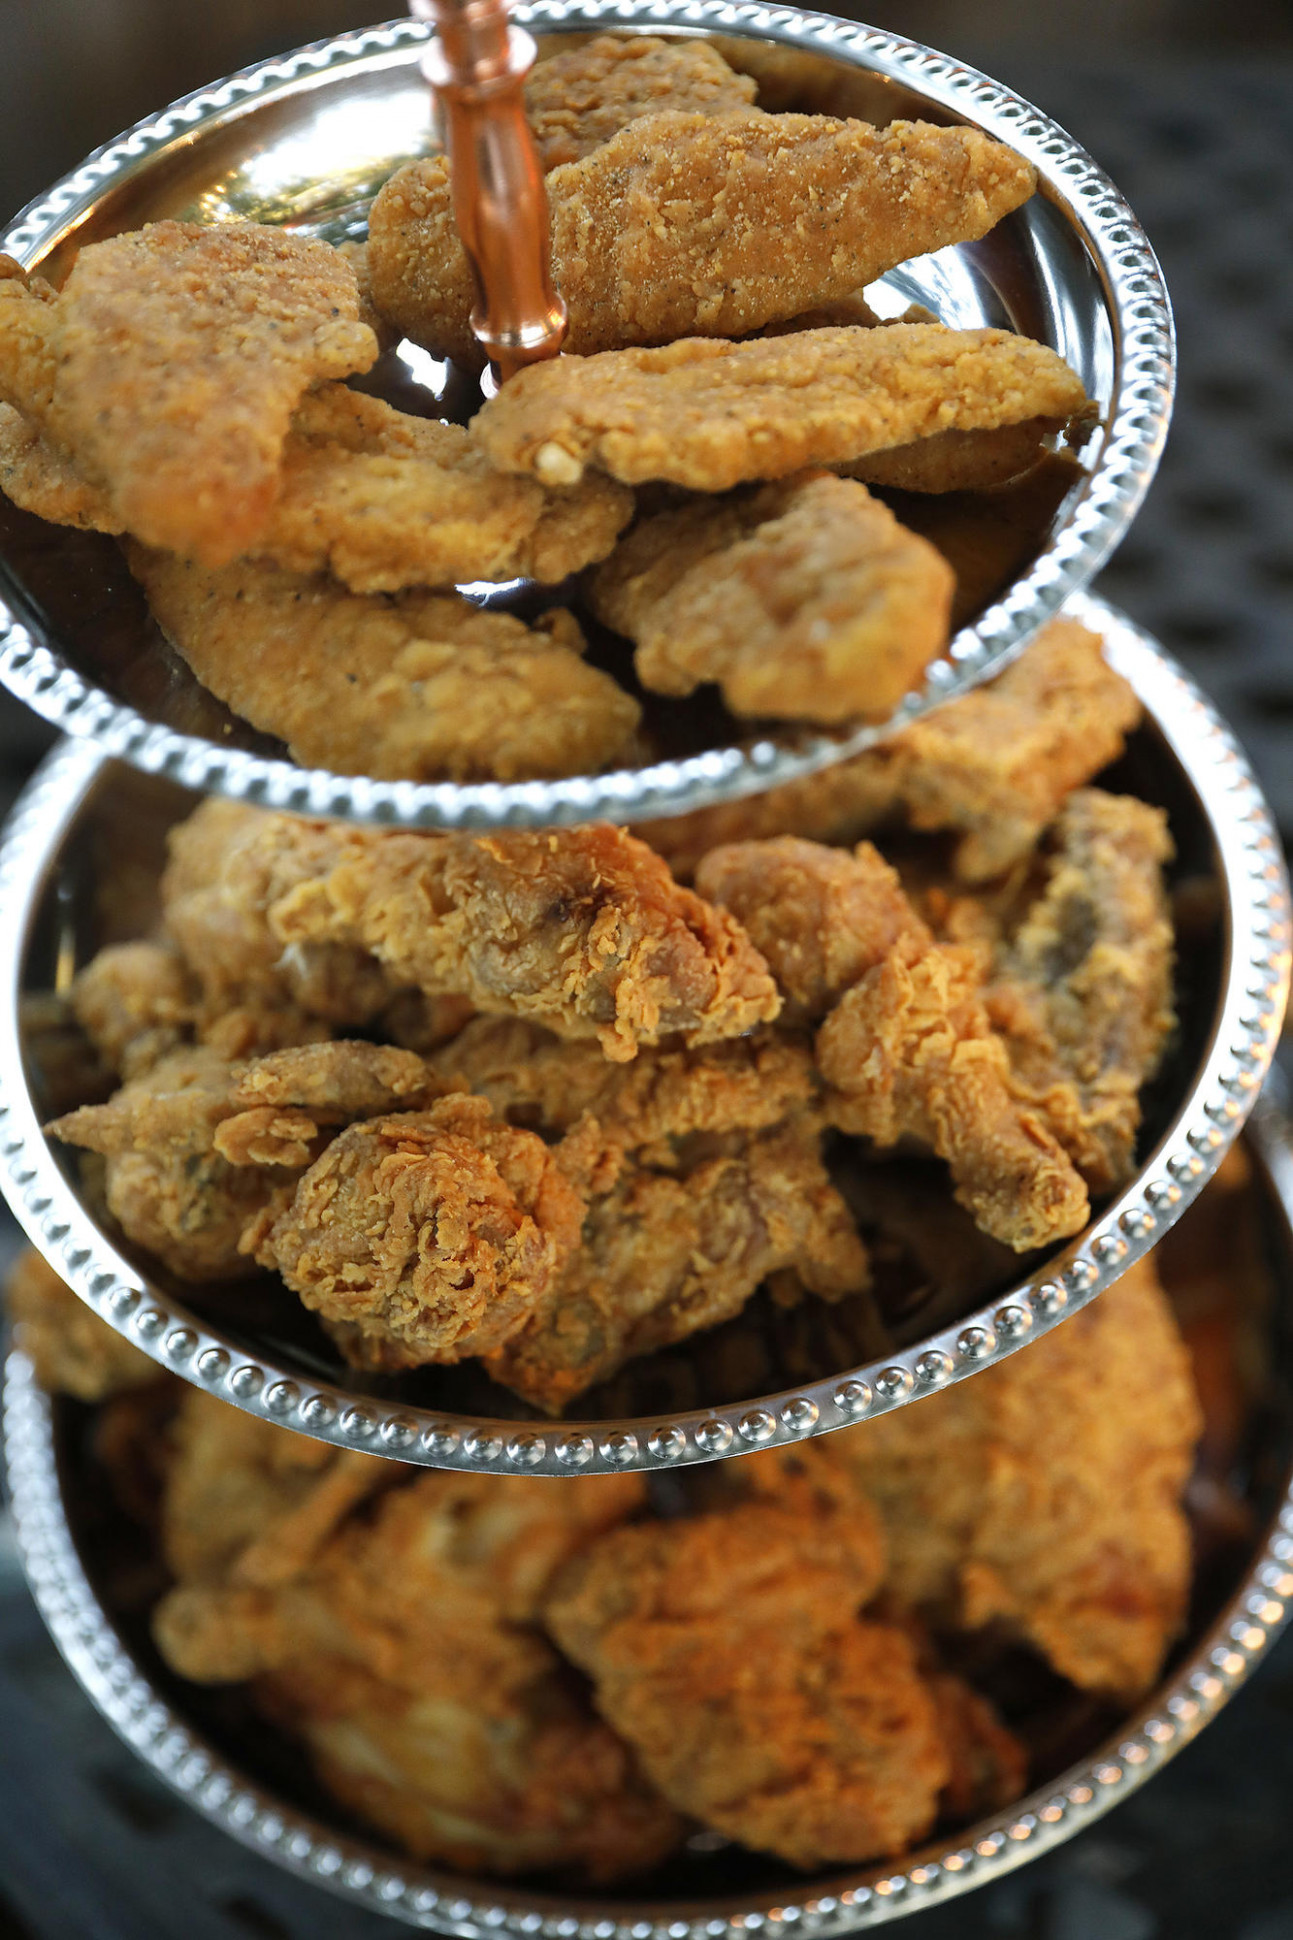 Entertaining: How to throw a fried chicken party - Los ..